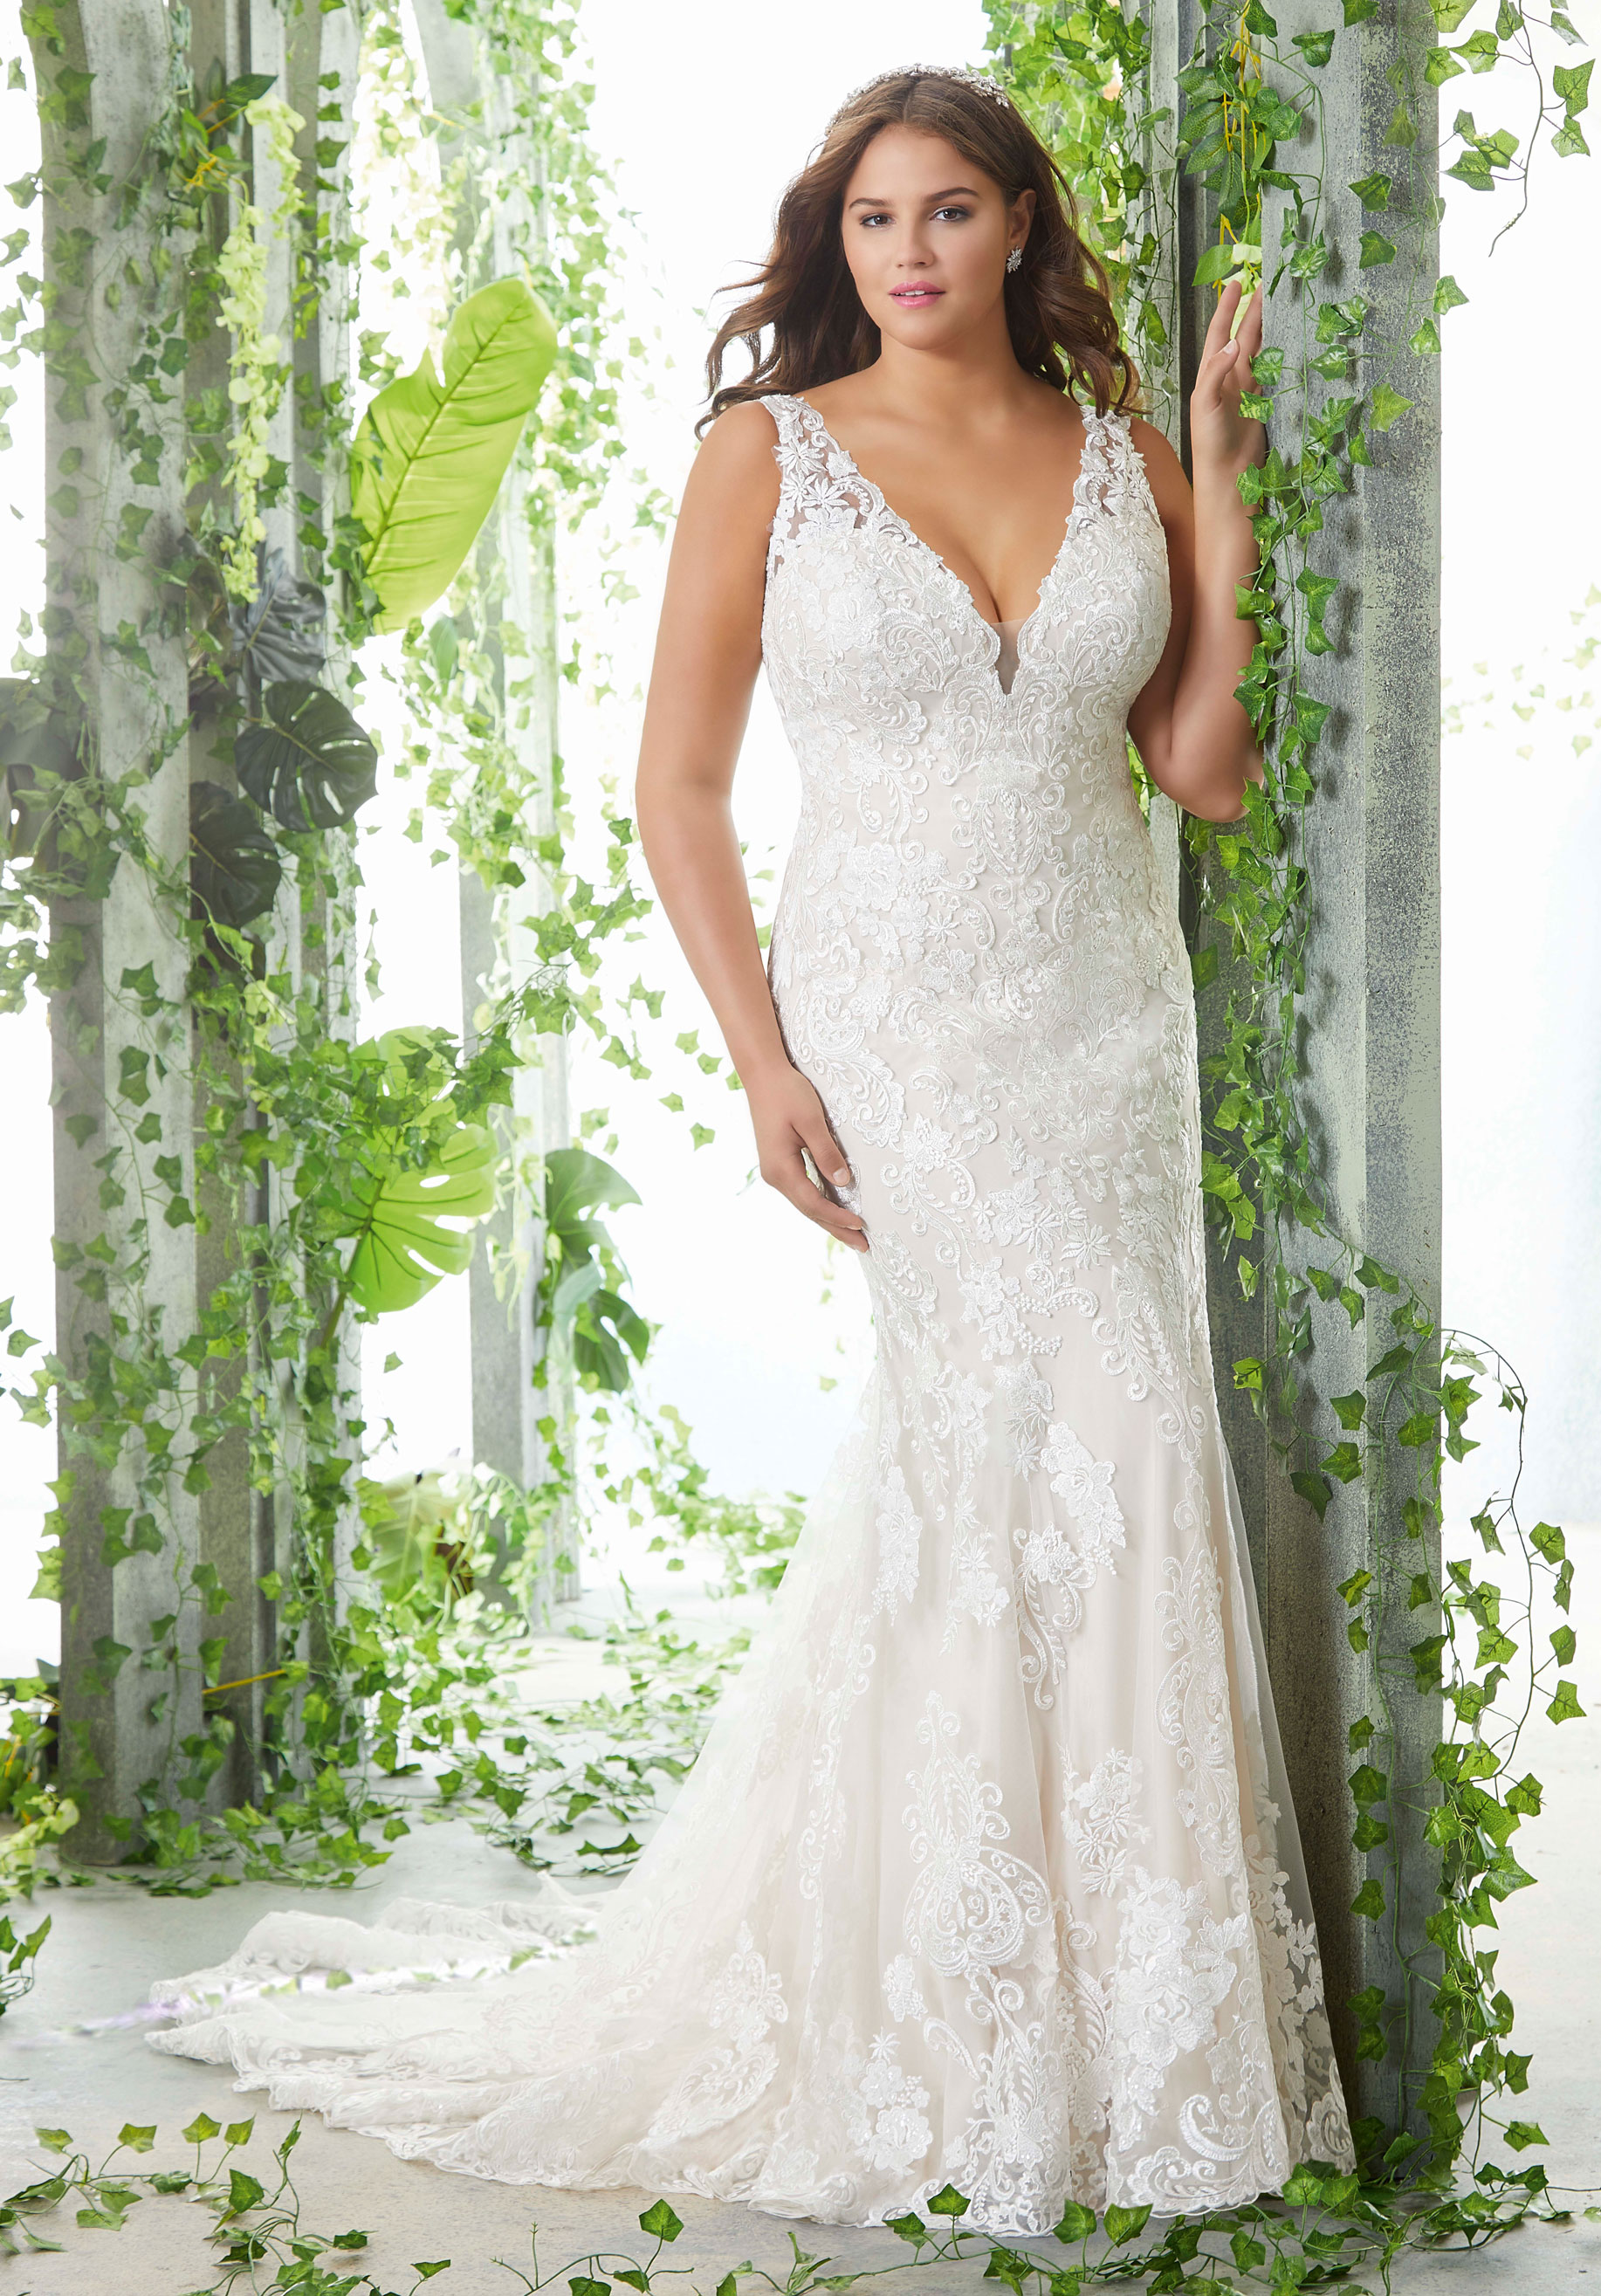 217233a4a77 Trending 2019 Julietta by Mori Lee Bridals Styles